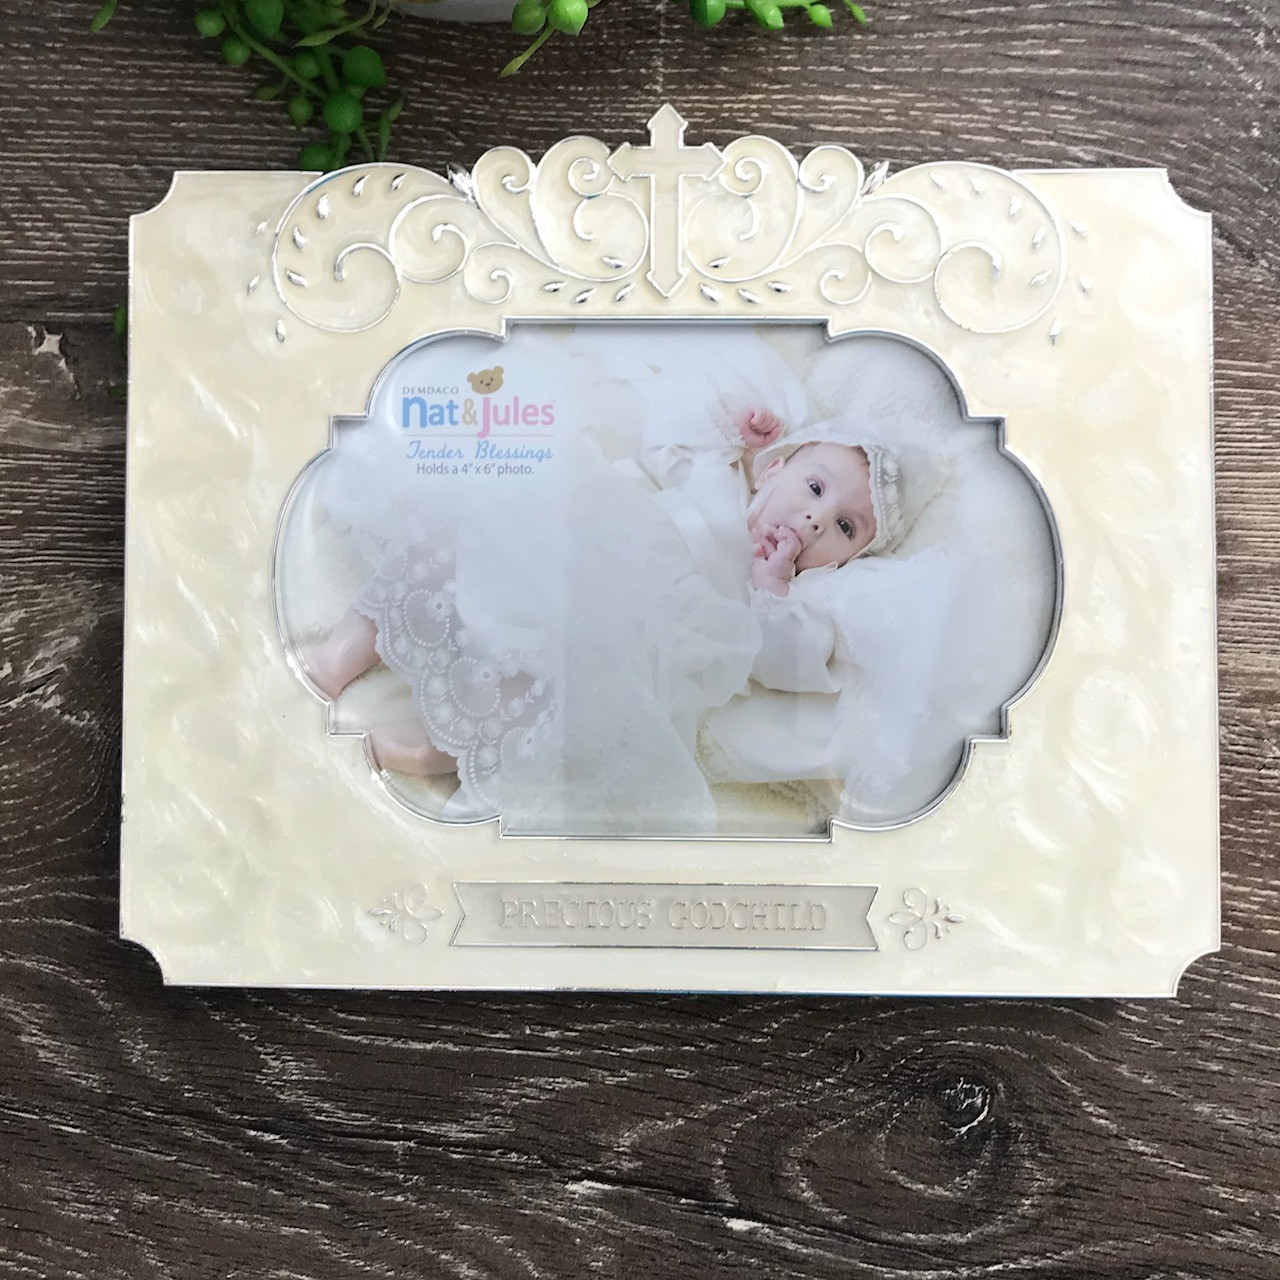 Godchild White Photo Frame with Cross By Gifted Memories Faith